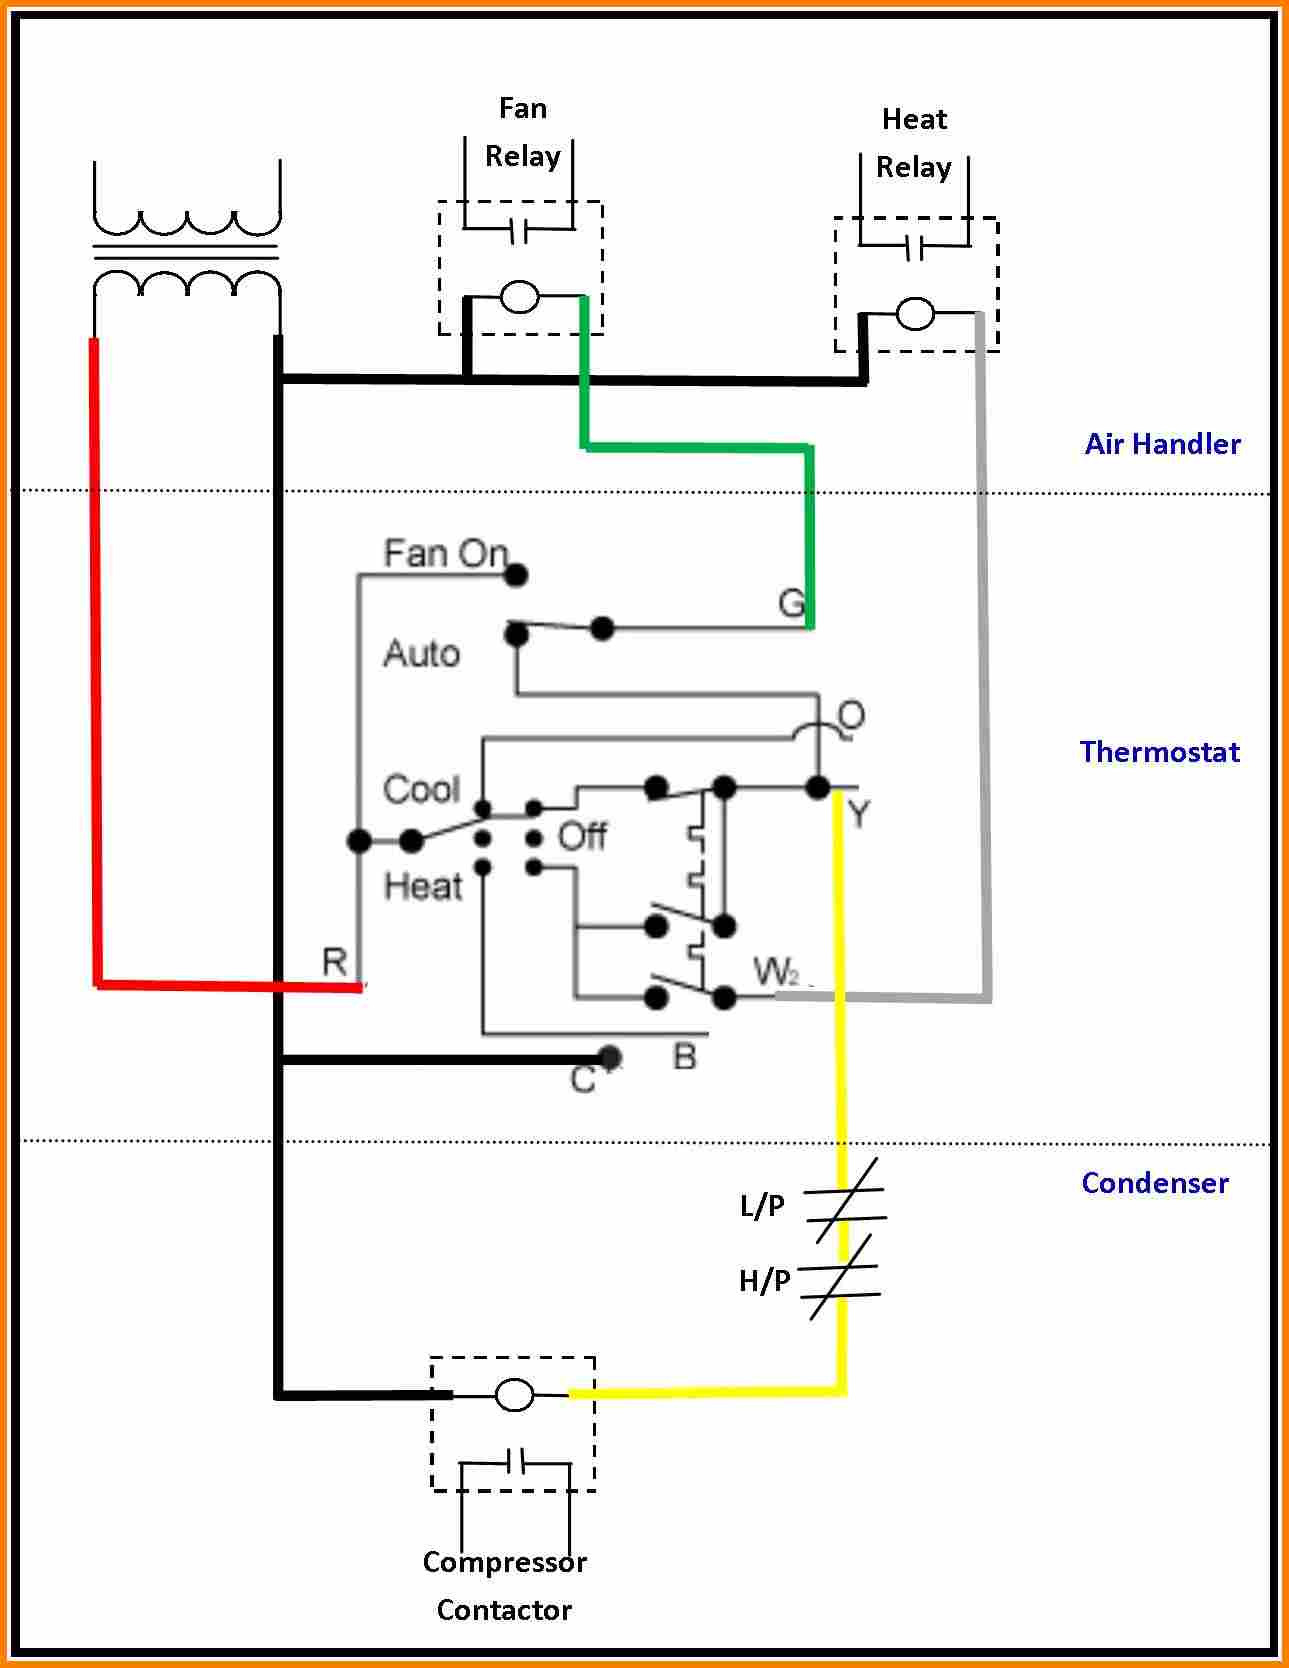 gas furnace thermostat wiring diagram Collection-5 Gas Furnace Thermostat Wiring Diagram Cable Pleasing Wire 2-t